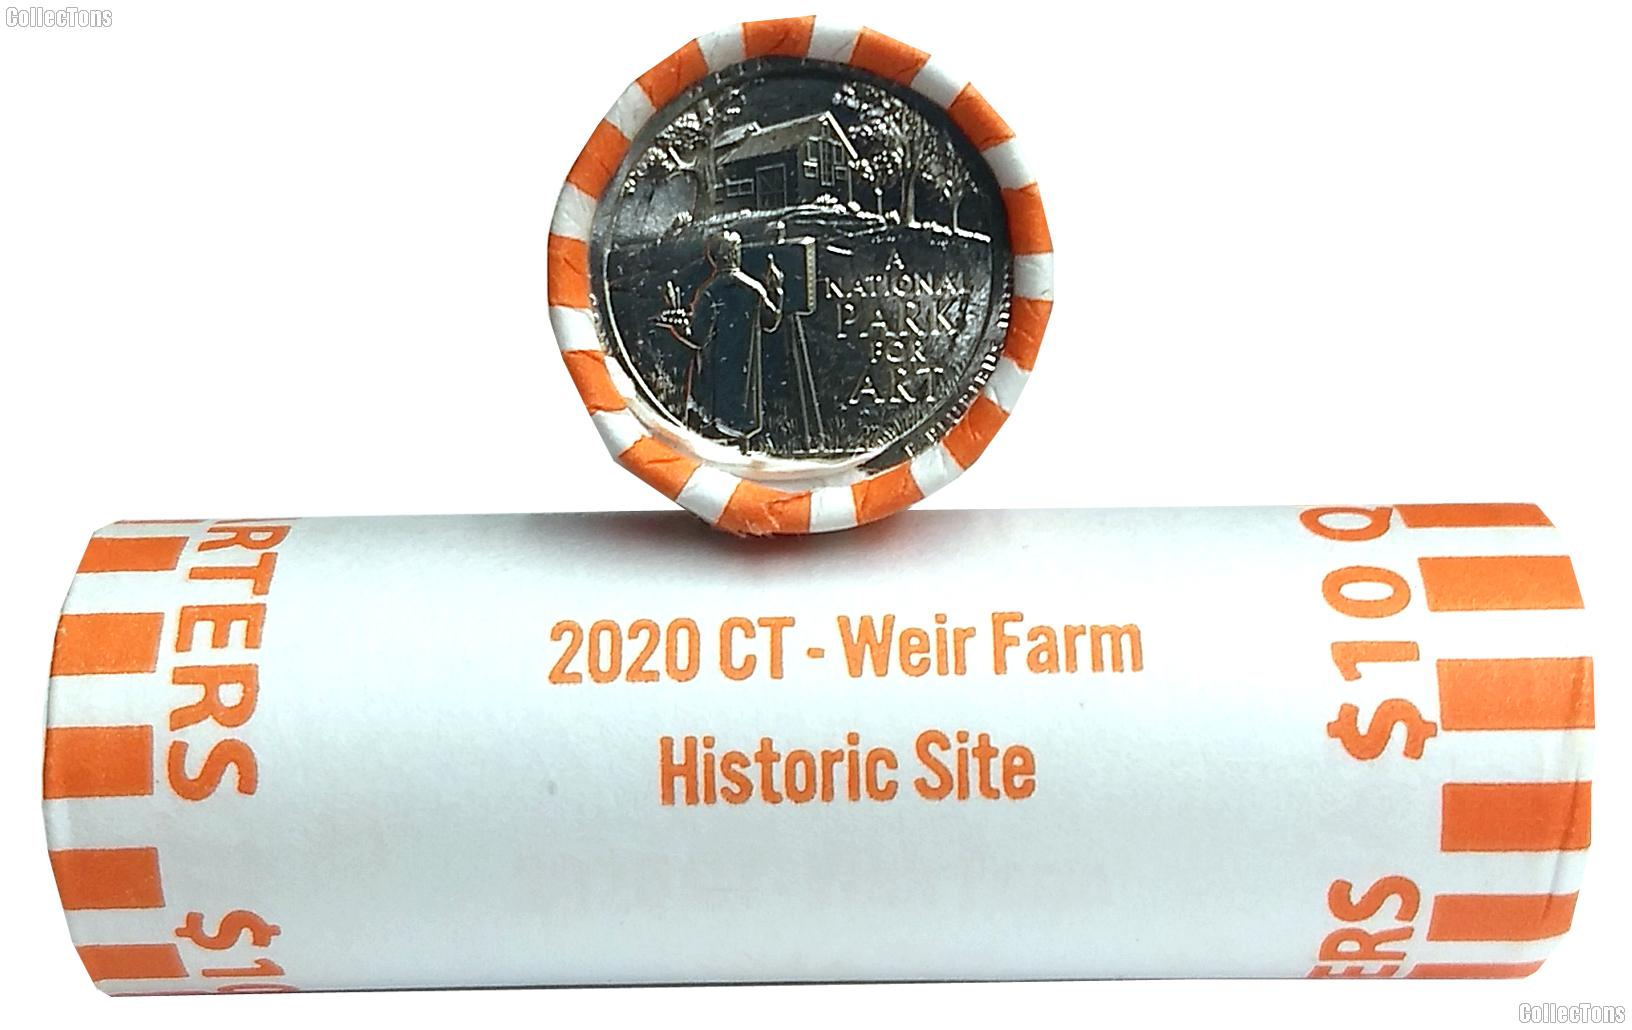 2020-P Connecticut Weir Farm Historic Site National Park Quarter Roll GEM BU America the Beautiful